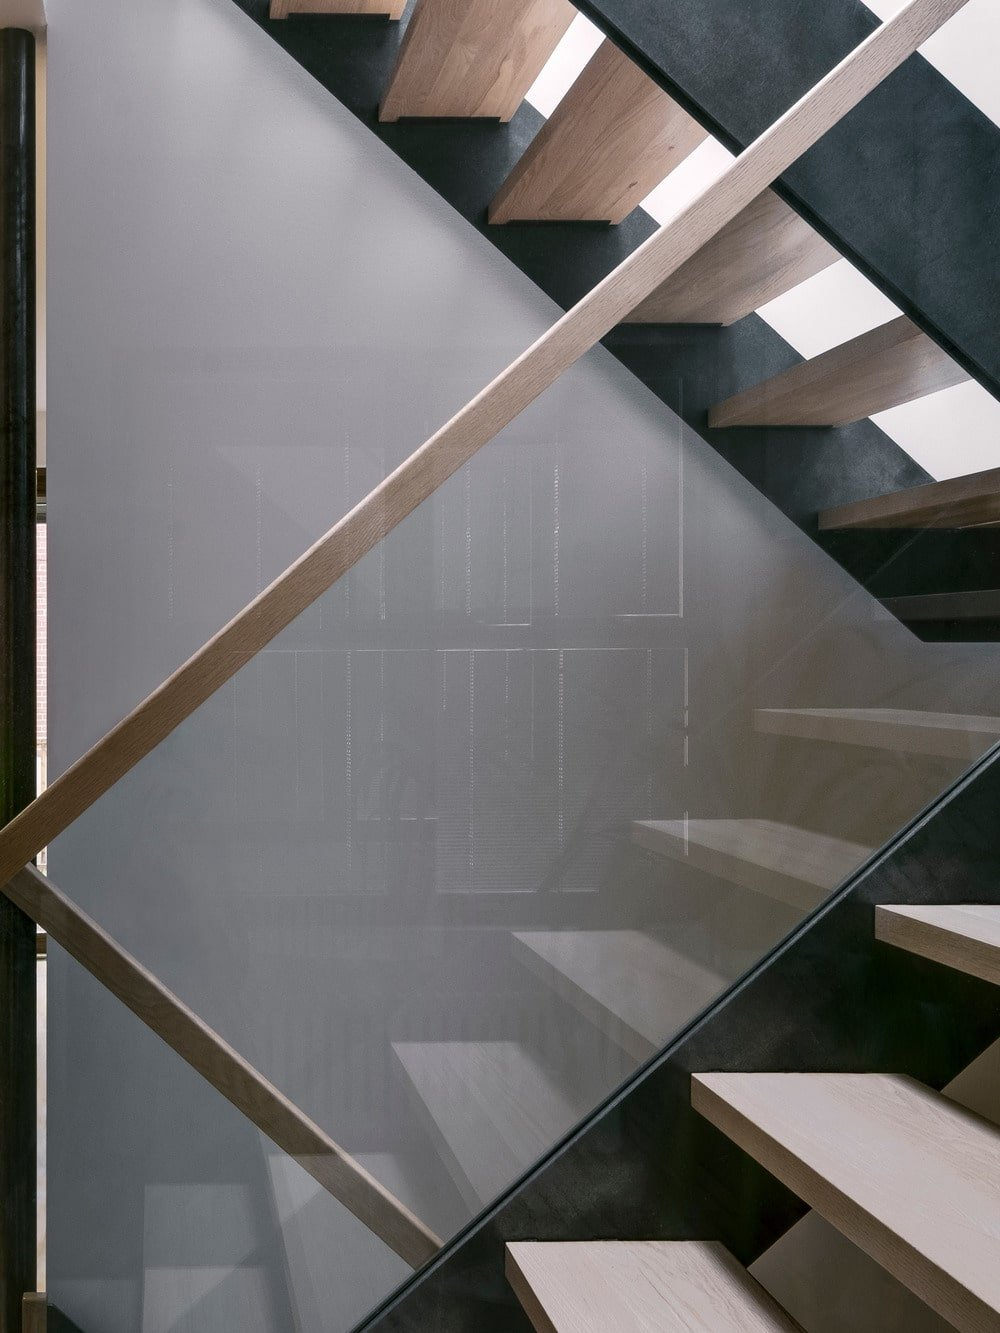 This is a closer look at the modern glass-enclosed modern staircase.